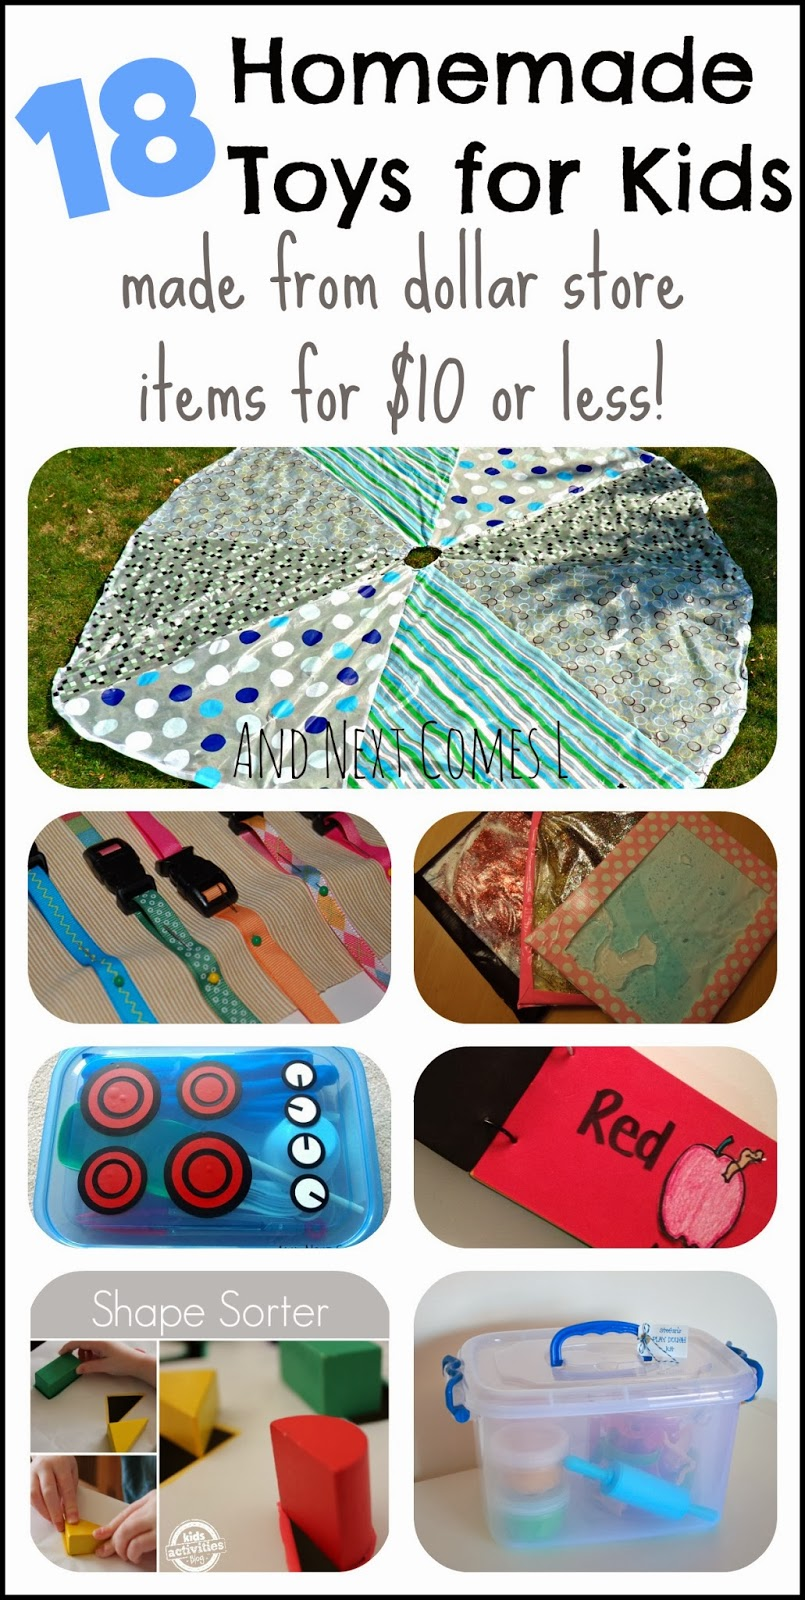 18 Homemade Toys for Kids Made from Dollar Store Items ...